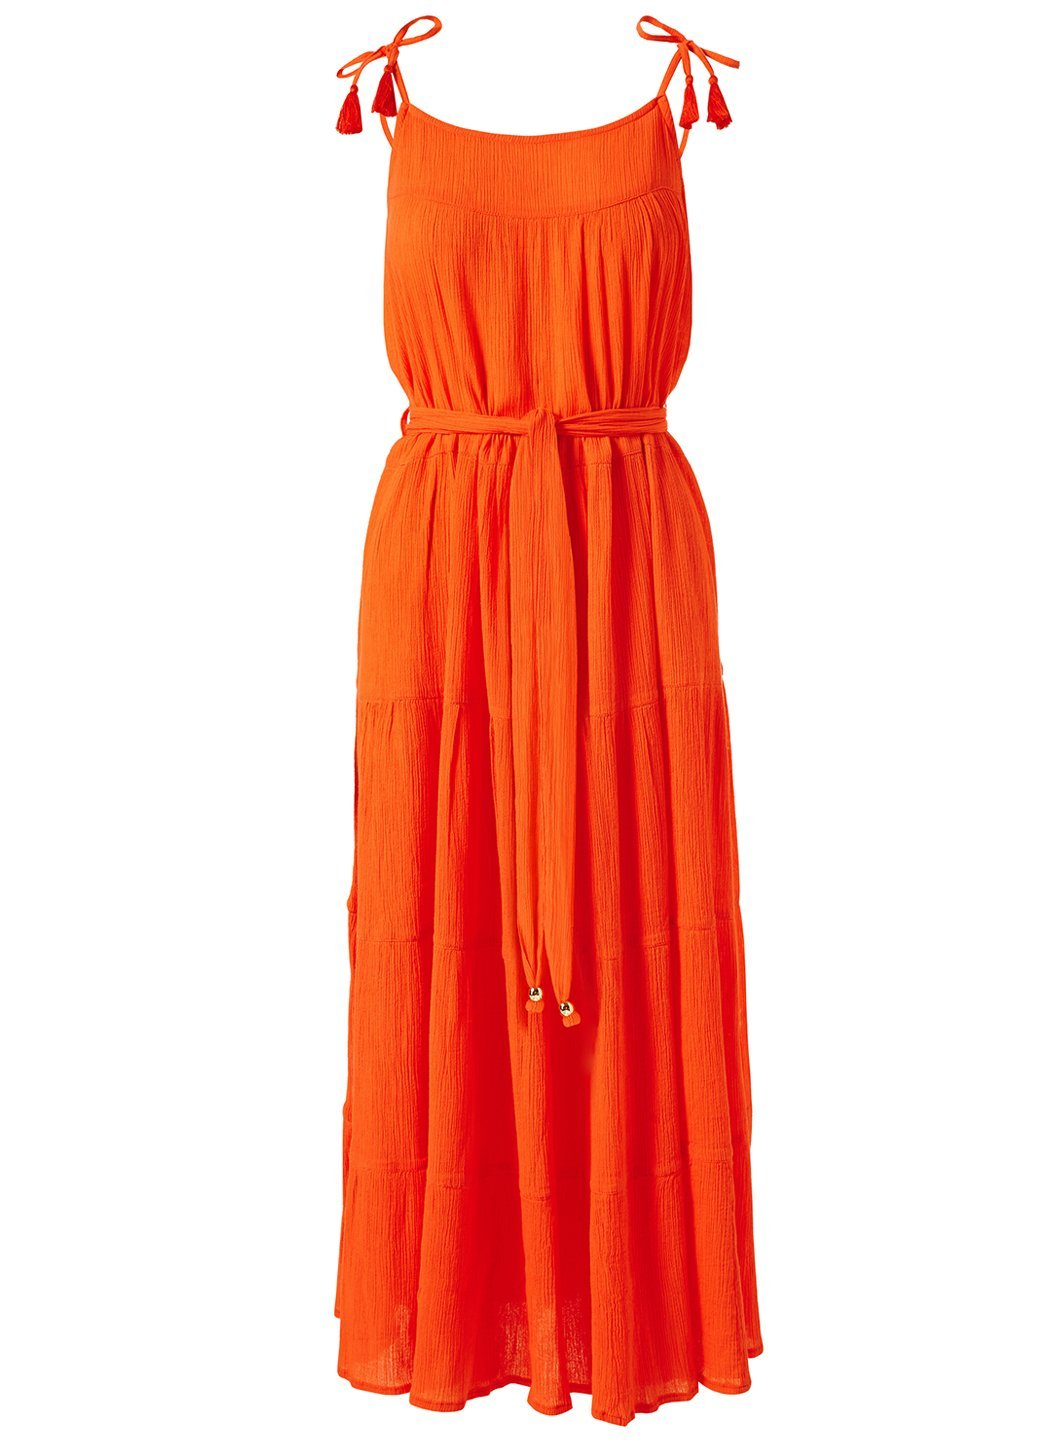 Fru Papaya Dress Cutout